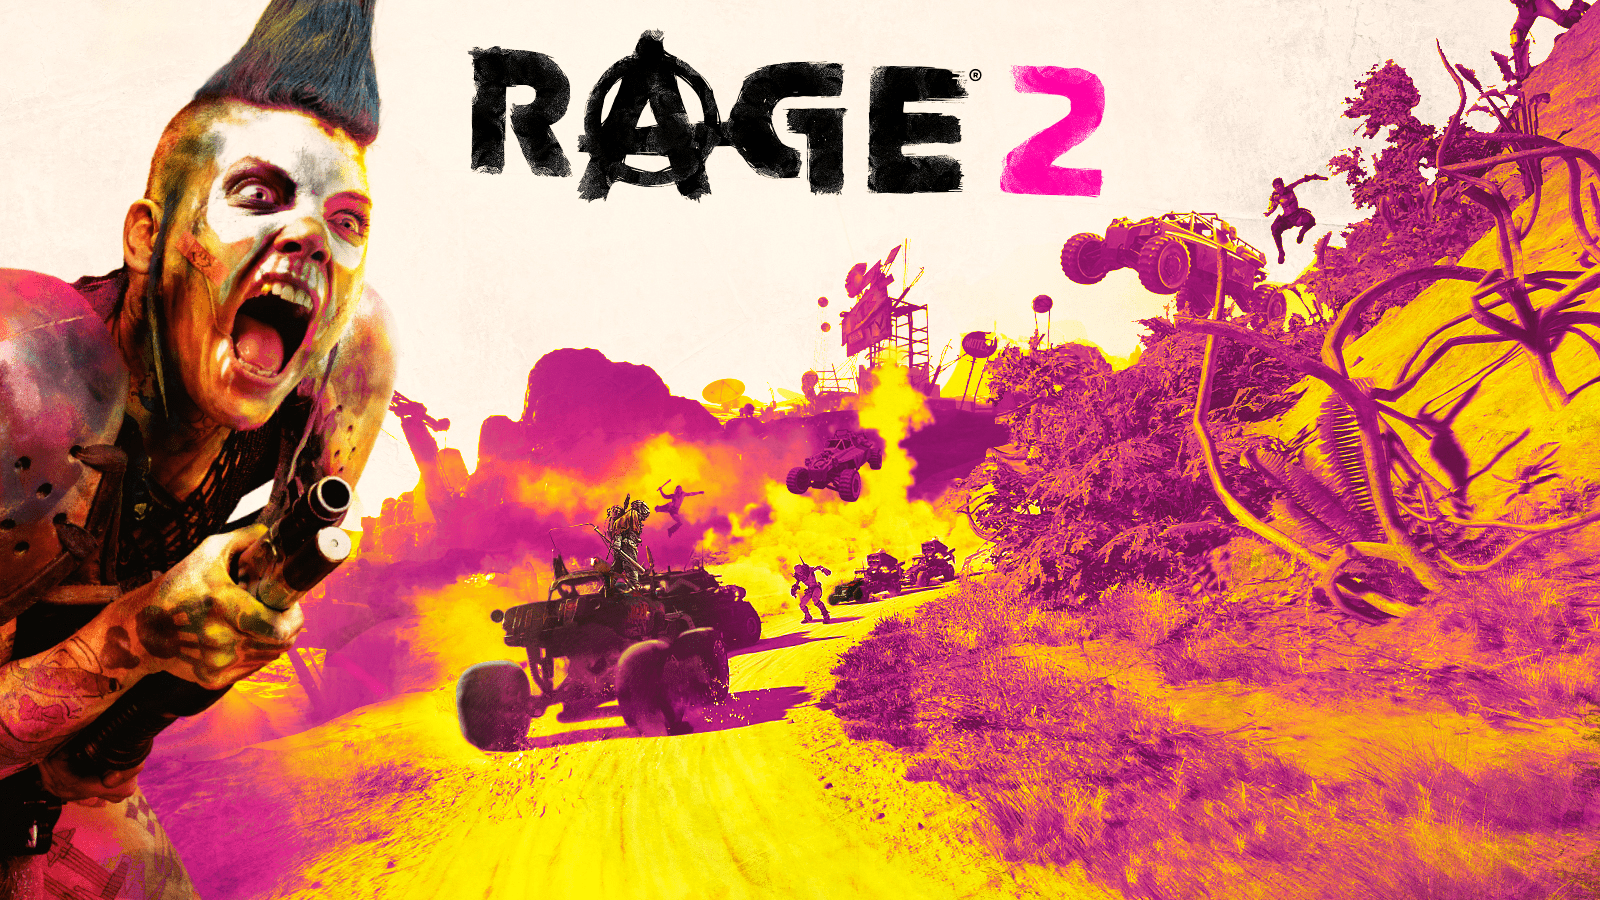 Ozzy Man Reviews – 'You Call That A Wingstick' Cheat Code – Now Live in Rage 2